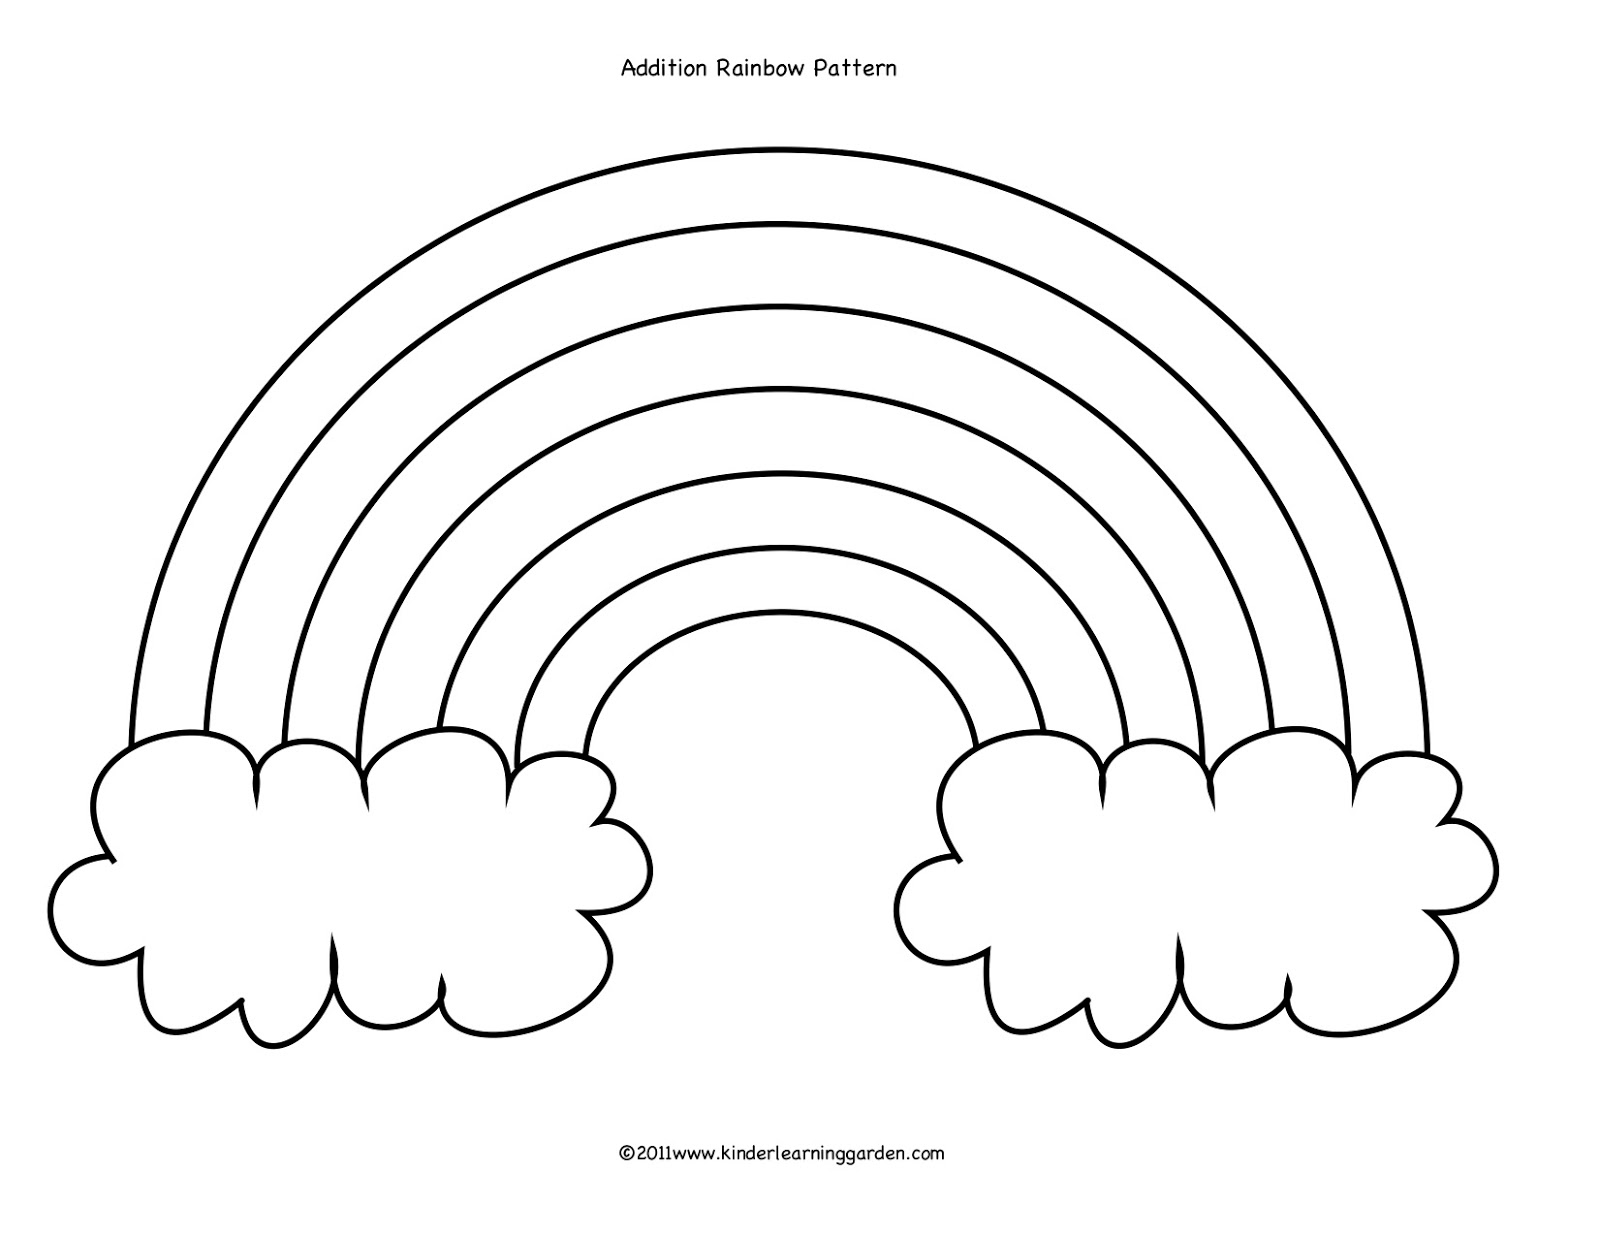 Kinder Learning Garden: Rainbow Cloud Addition